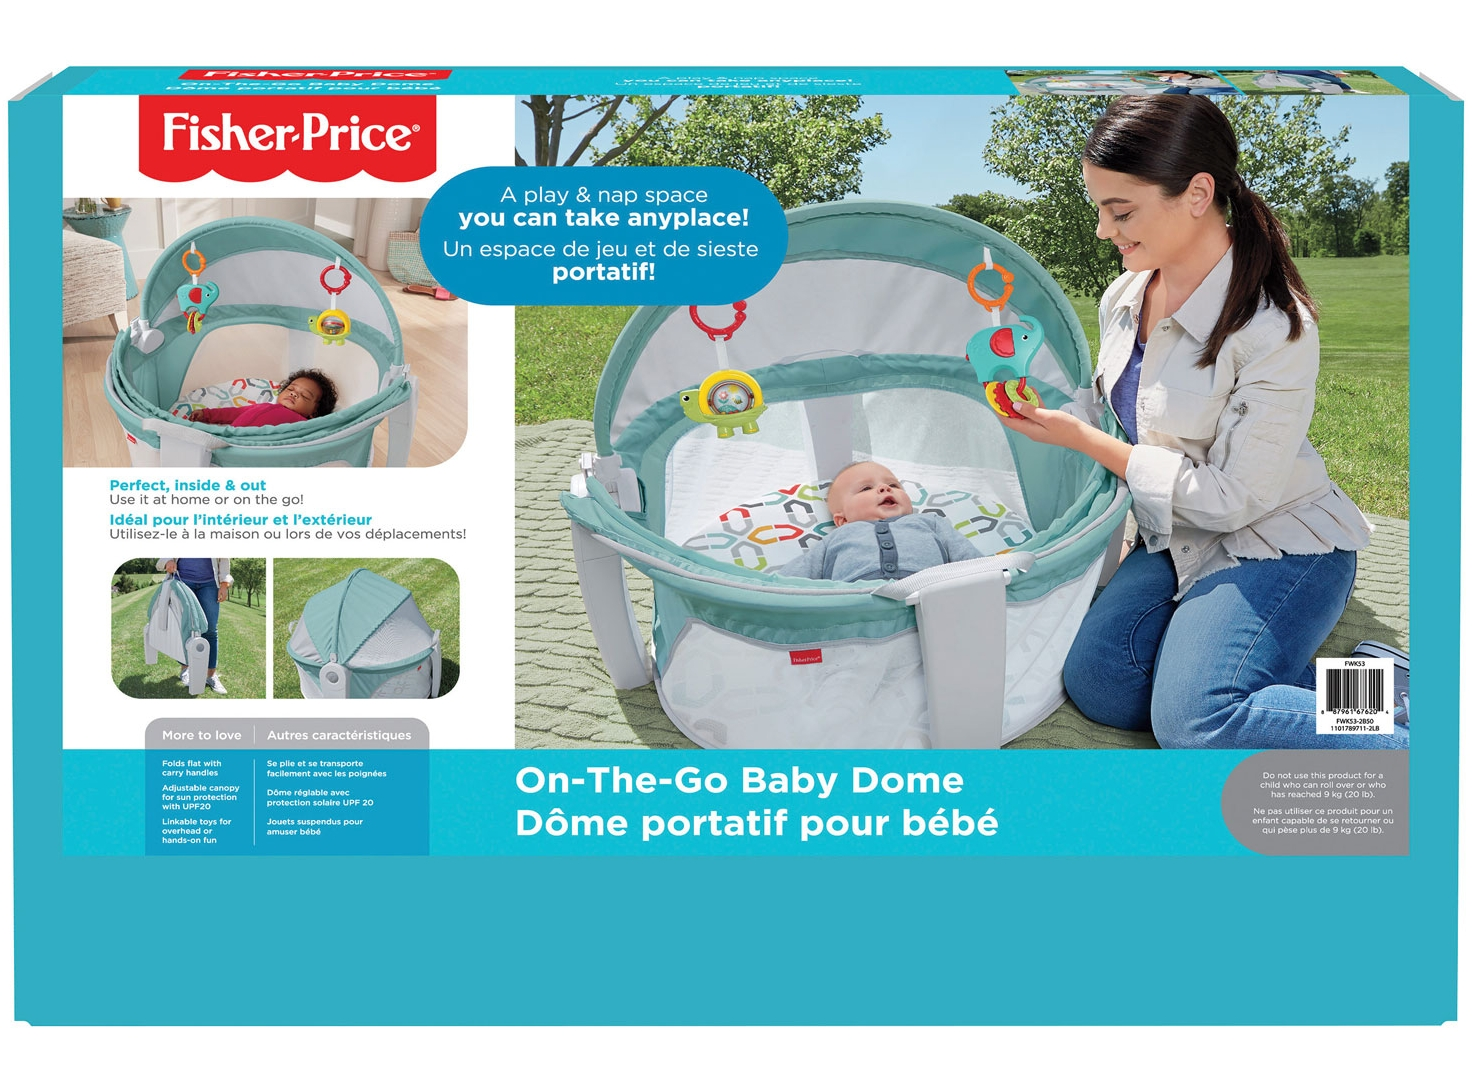 Lit de voyage pour bébé On-The-Go de Fisher-Price